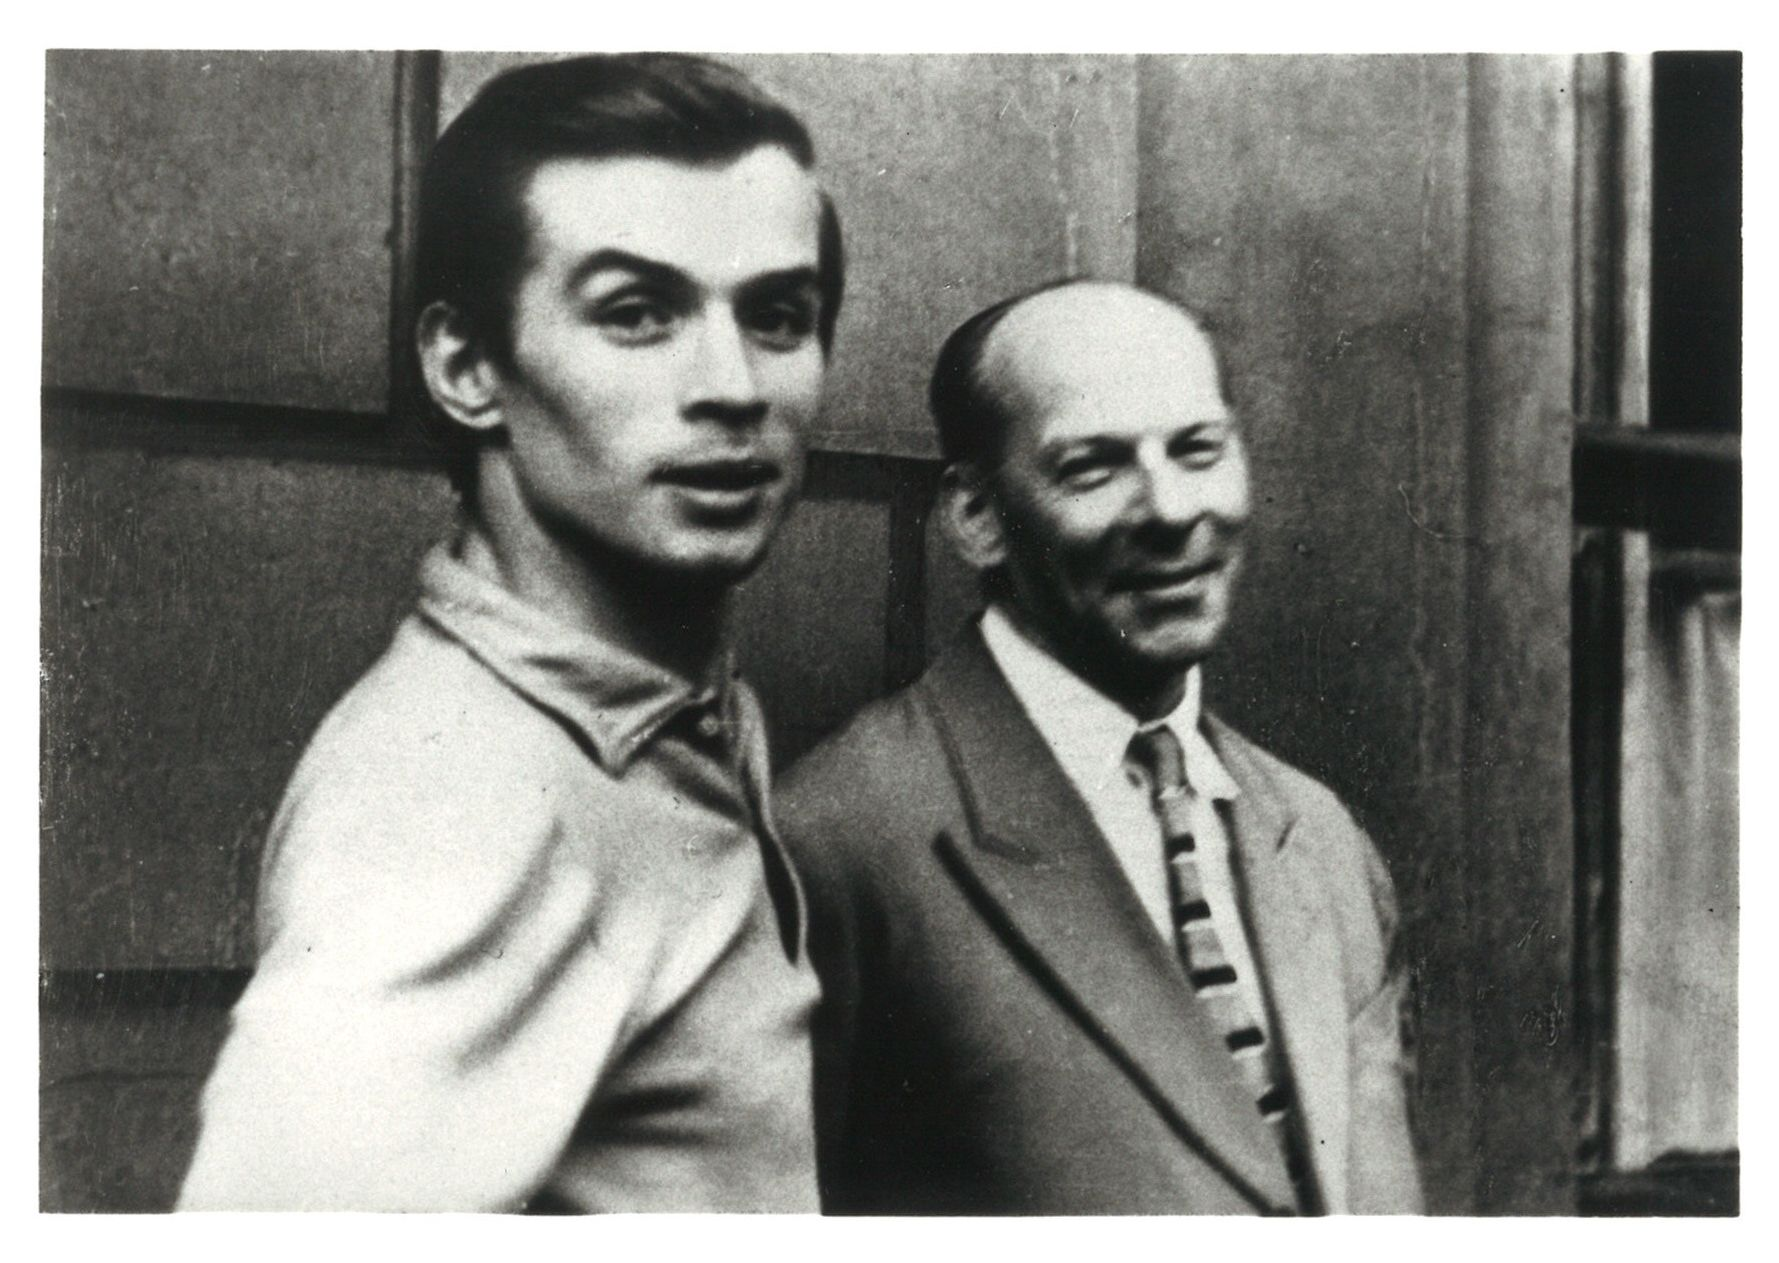 A black and white photograph of a young Rudolf Nureyev and his teacher, Alexander Pushkin, here smiling and wearing a suit and tie.